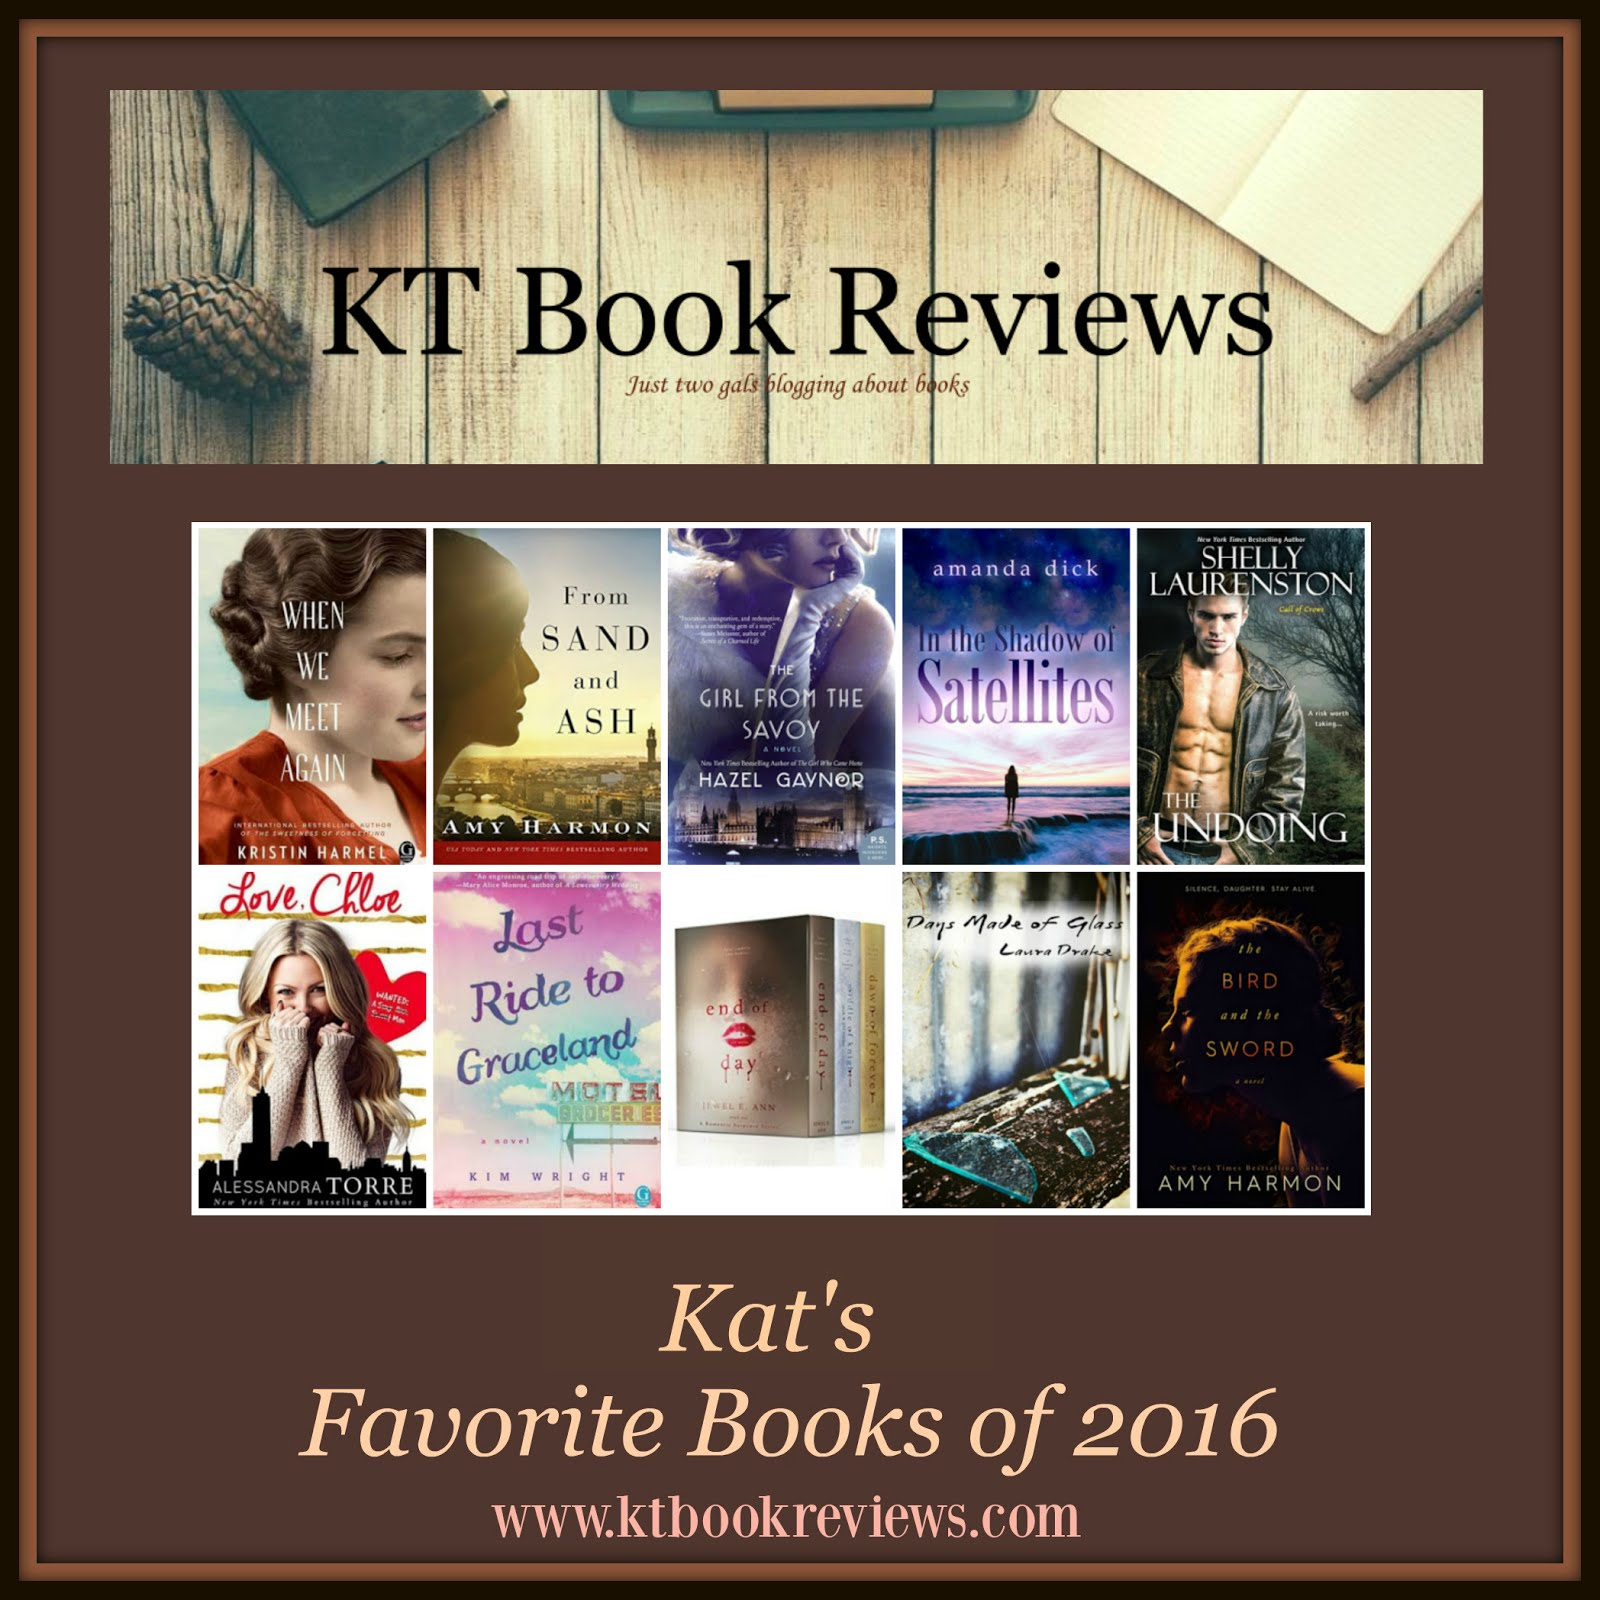 Kat's Top Reads of 2016